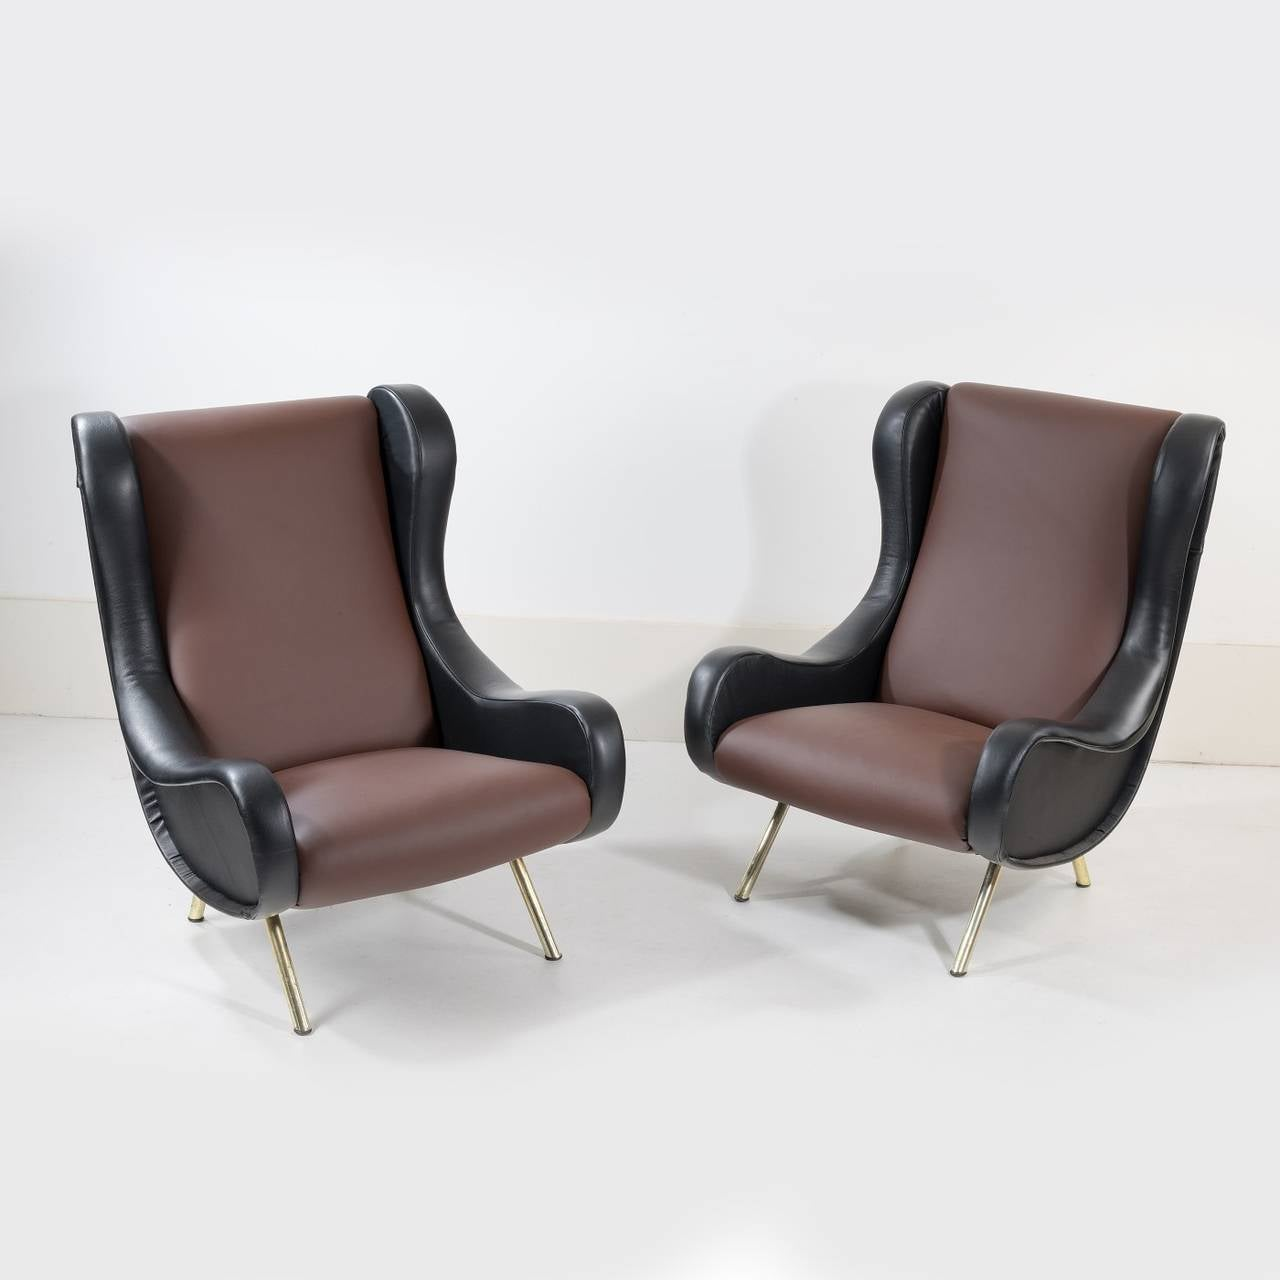 Pair of armchairs Model 'Senior' designed by Marco Zanuso and edited by Arflex. They have been reupholster in dark brown and black leather.